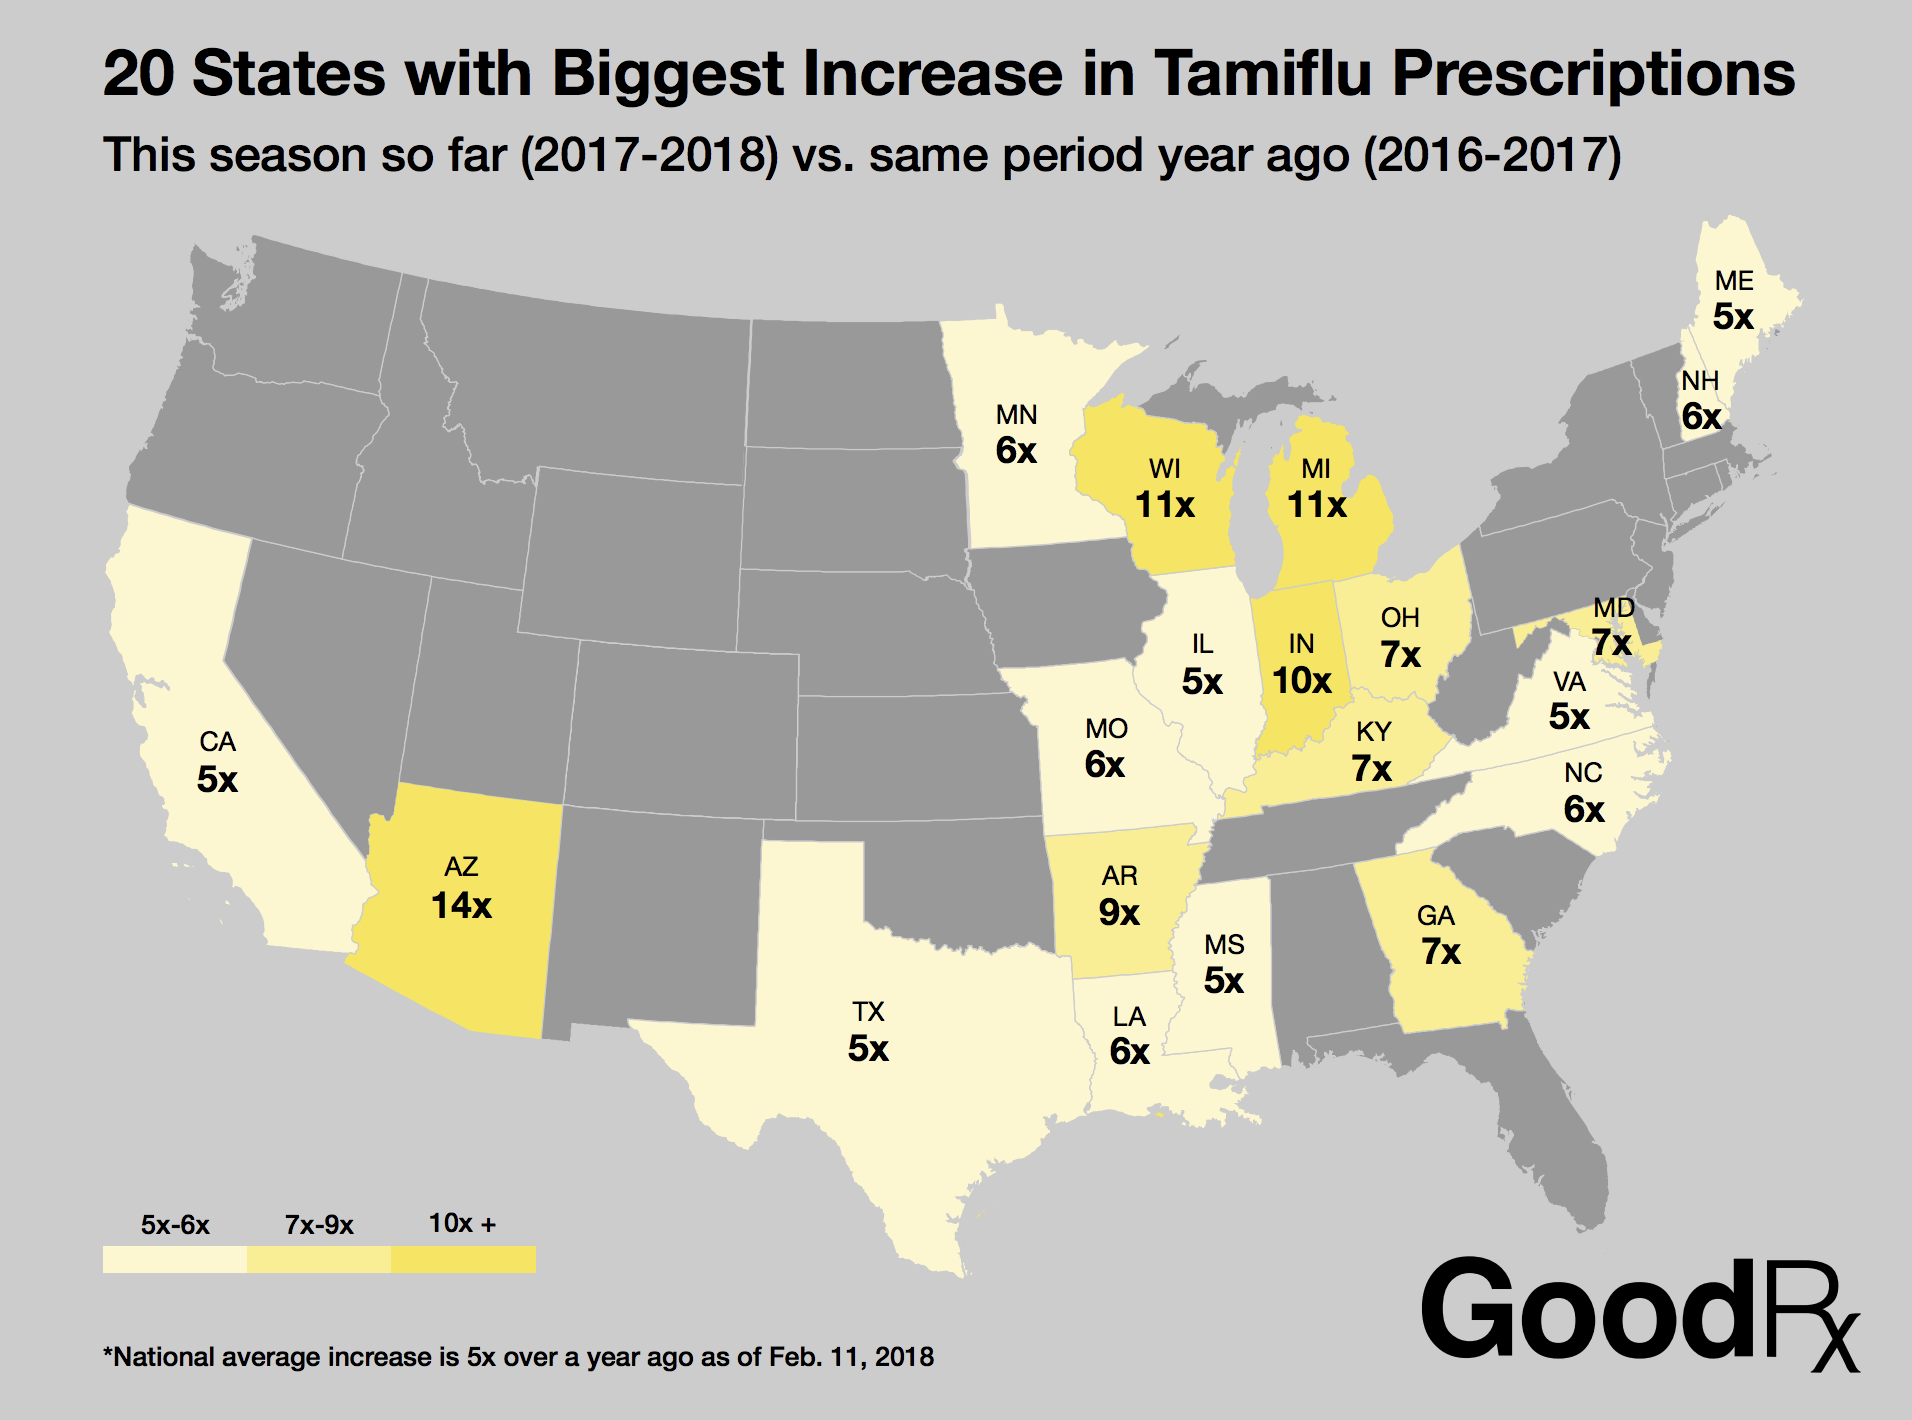 Tamiflu Prescriptions Reveal Shocking Flu Trend - GoodRx on indiana rabies map, indiana gas map, indiana district map, indiana hiv map, indiana time map, indiana lyme disease map,